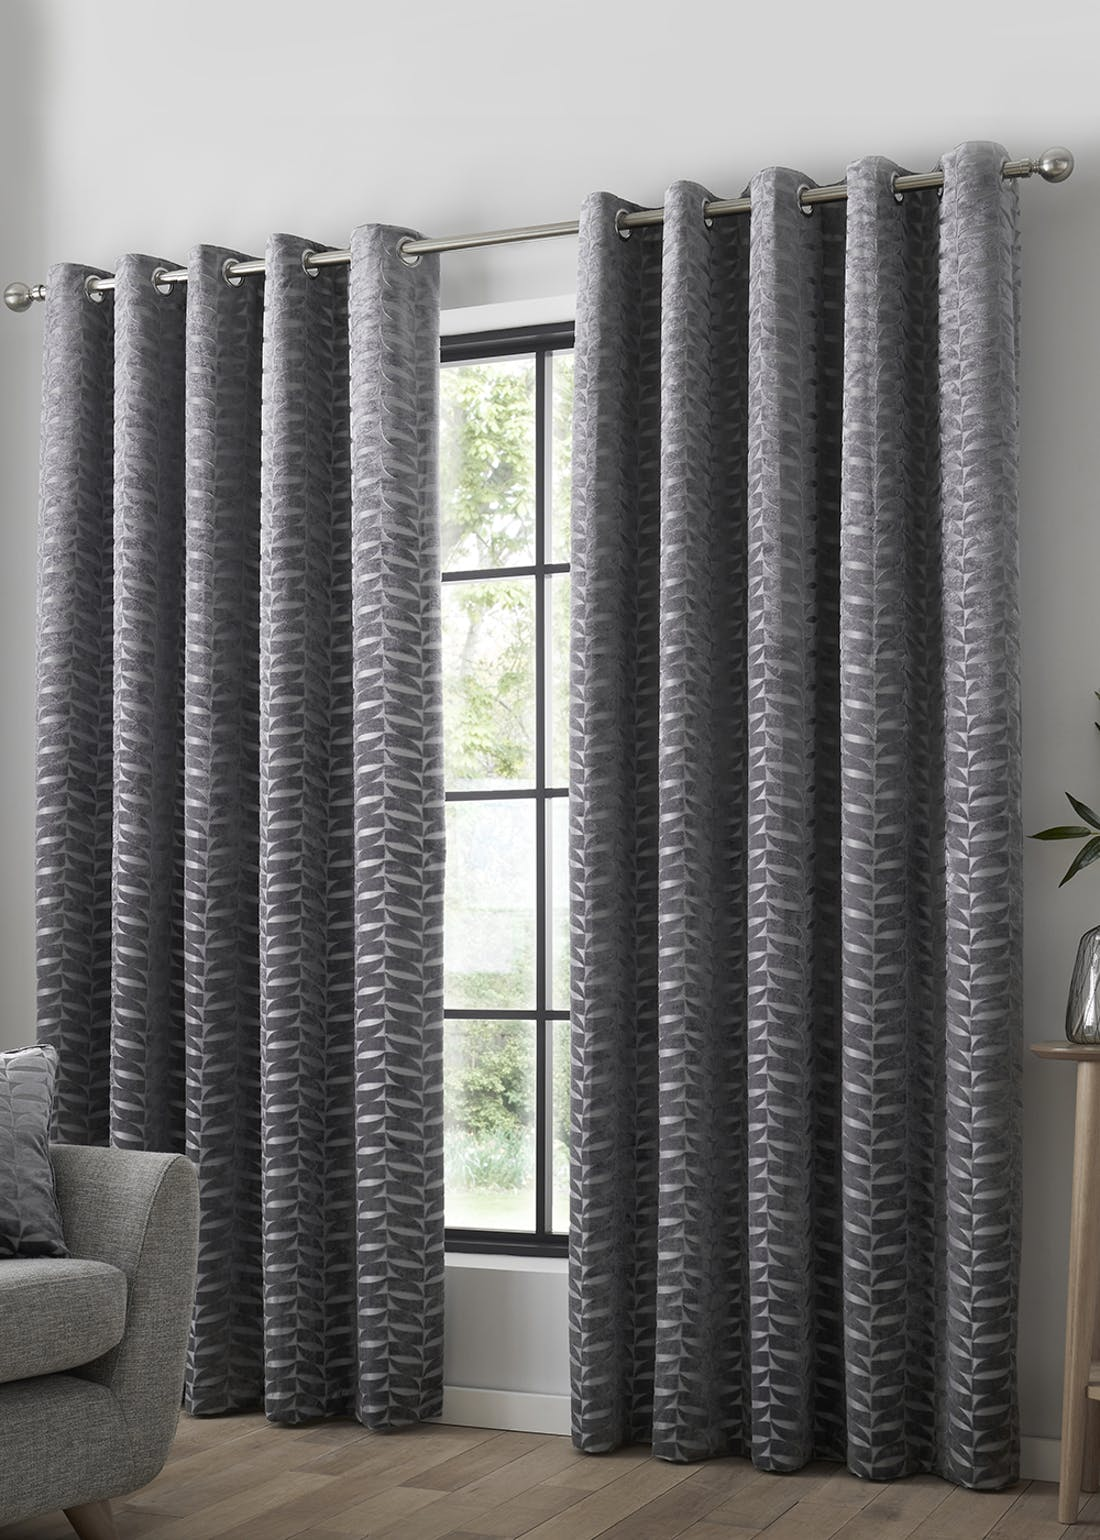 Curtina Kendal Eyelet Curtains